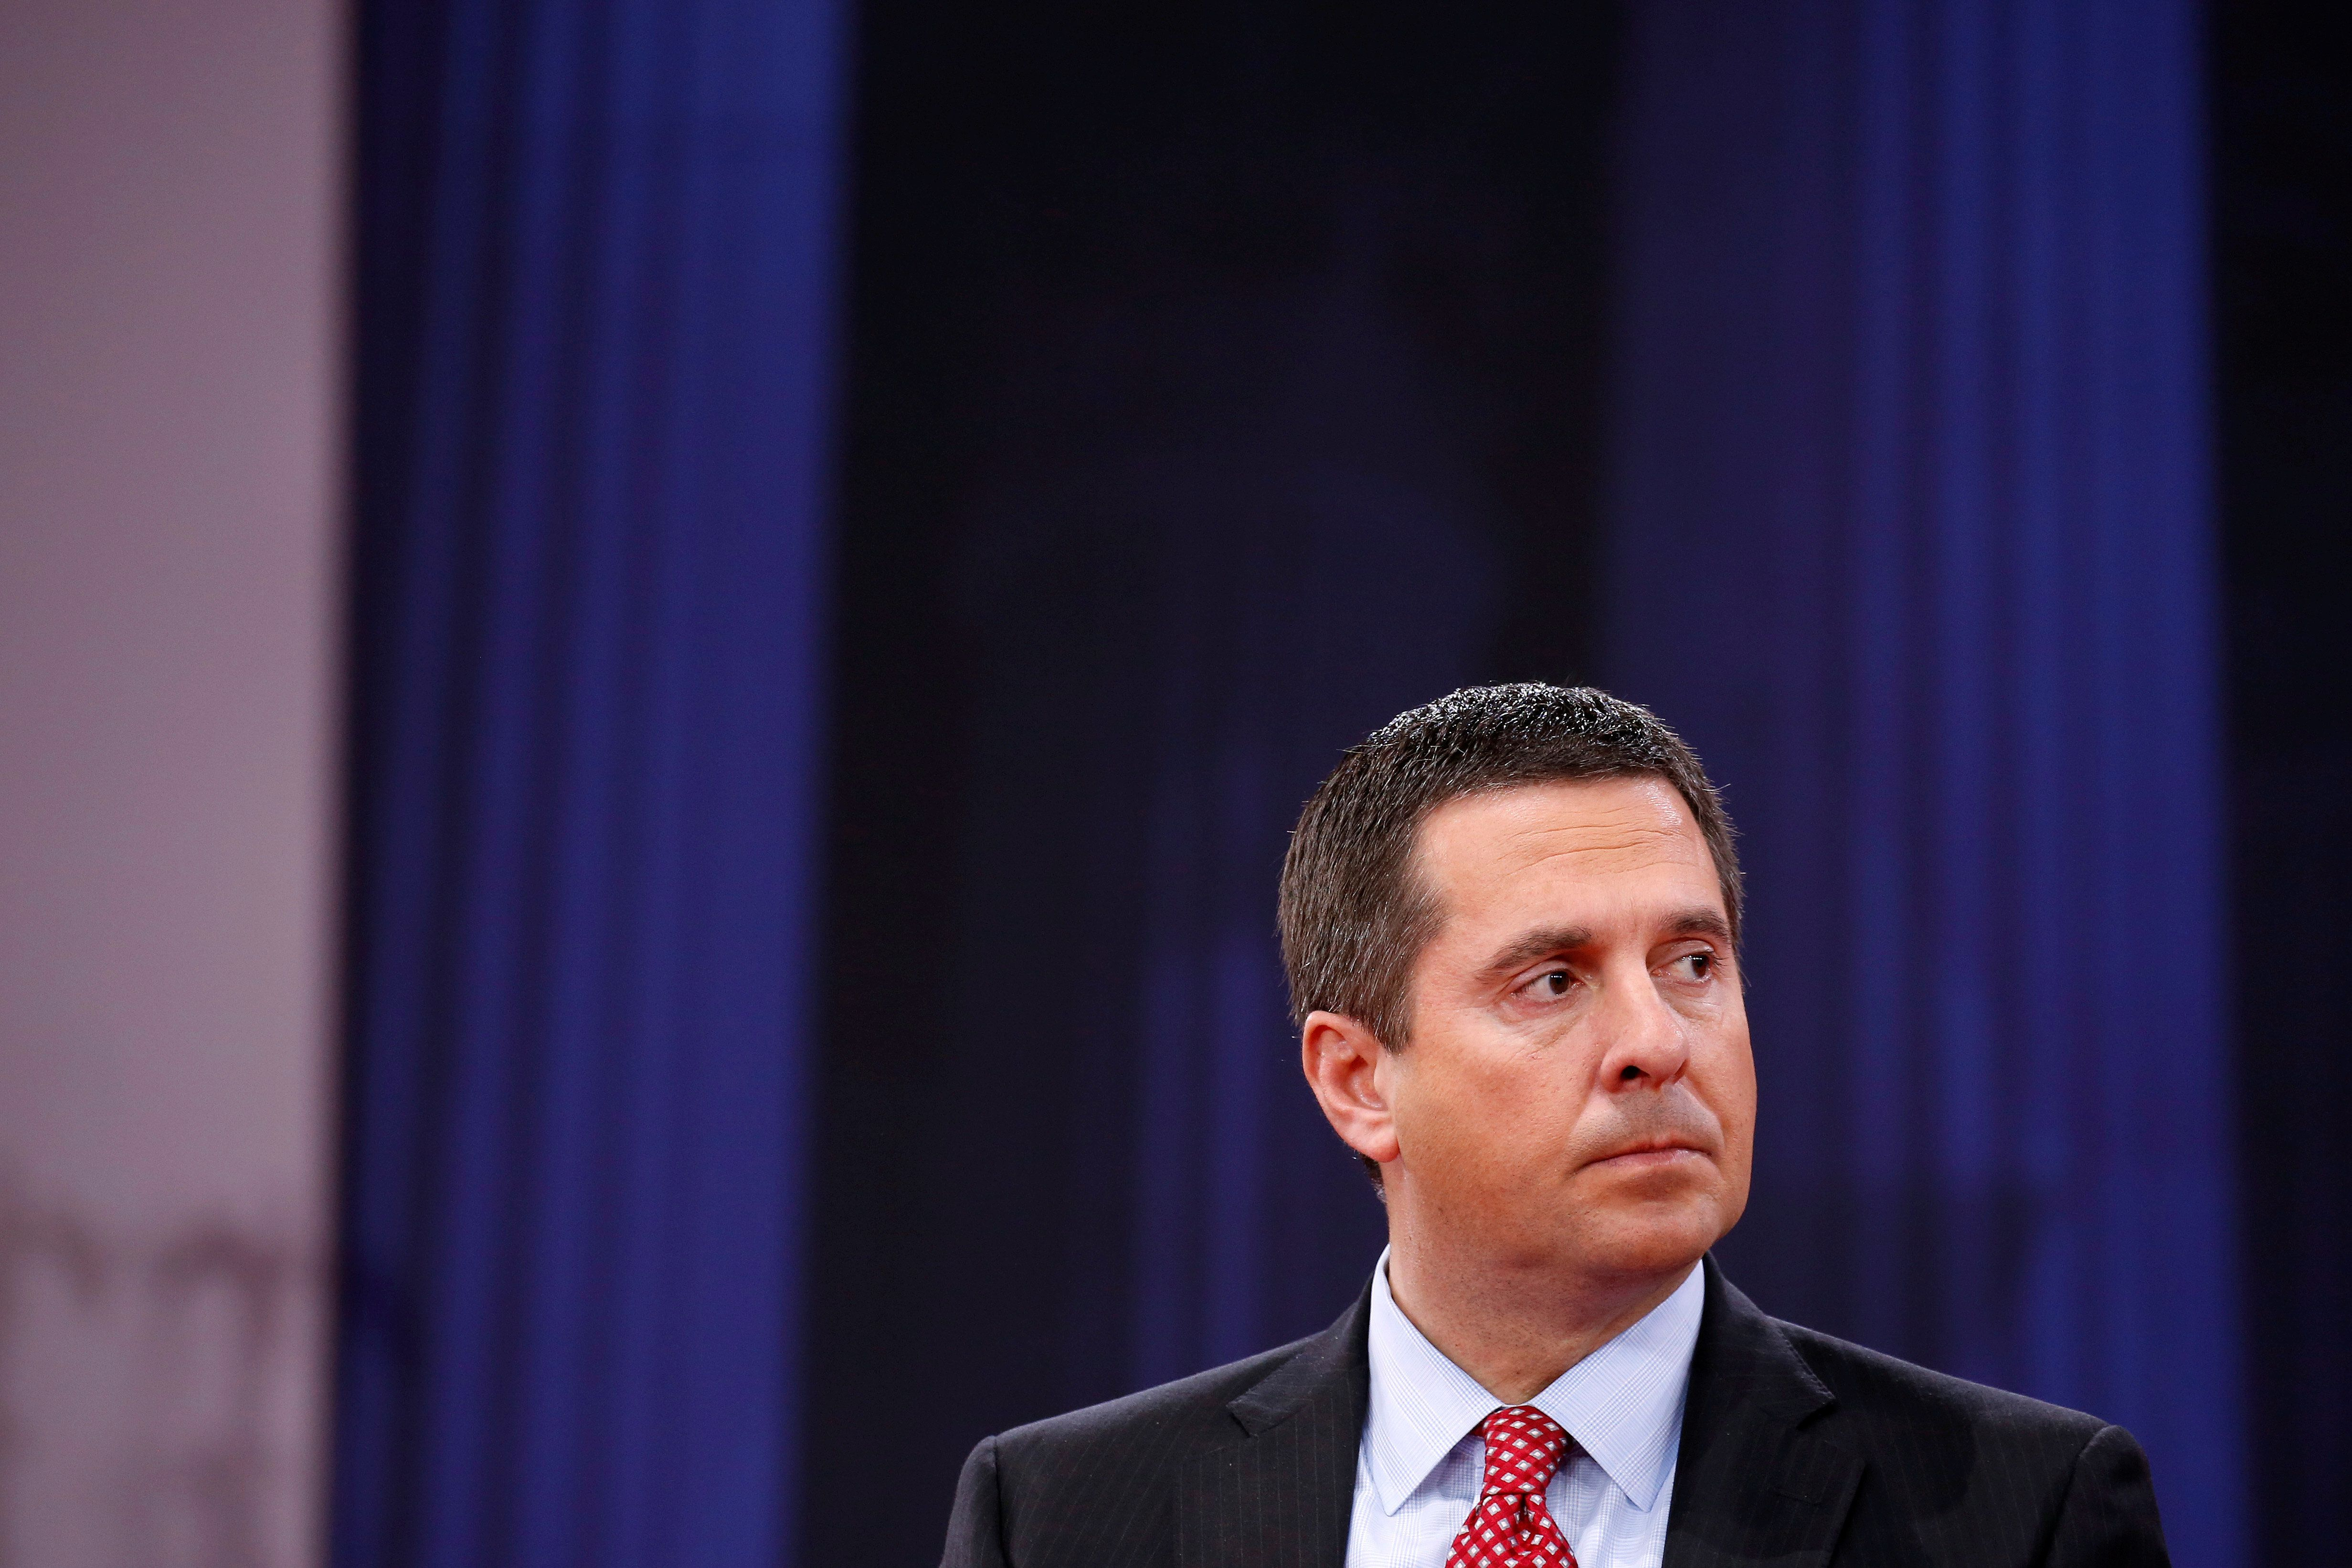 Recording reveals Nunes saying Rosenstein impeachment would complicate Kavanaugh confirmation